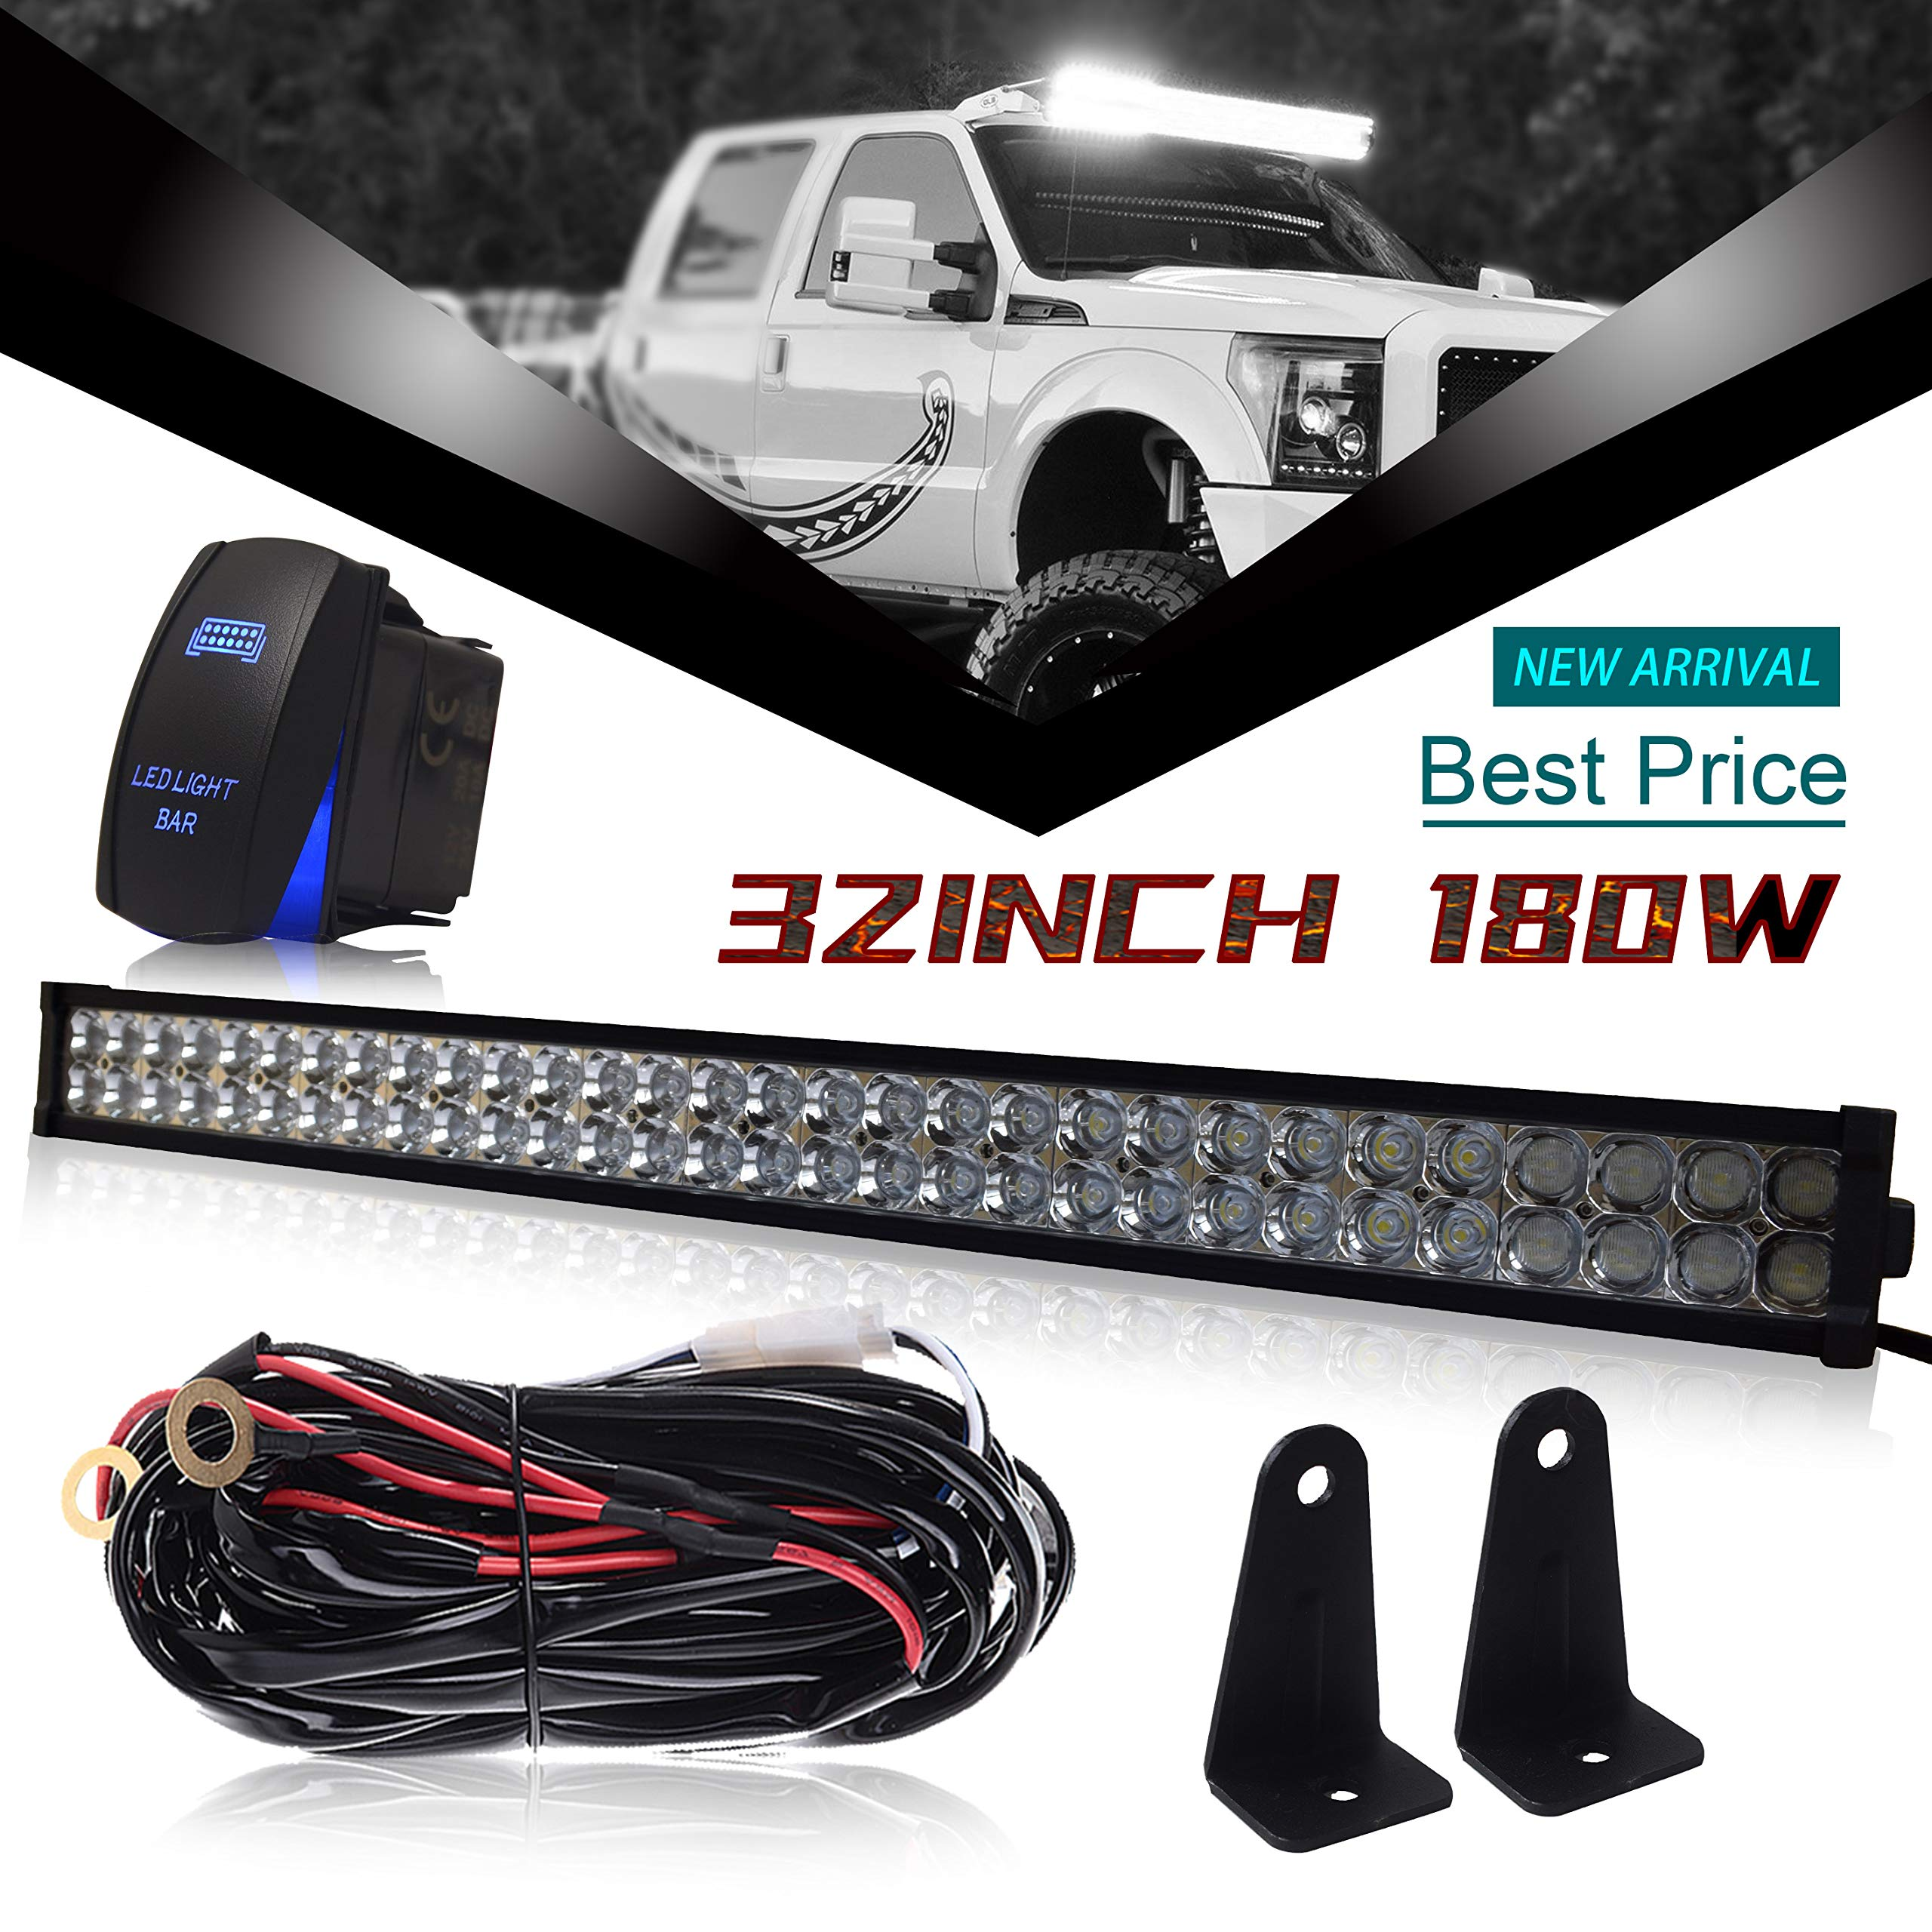 2017 Chevy Equinox Grill Top Deals Lowest Price Jeep To Wiring Harness Dot 32 Inch 180w Led Light Bar Combo Windshield Bumper 1x